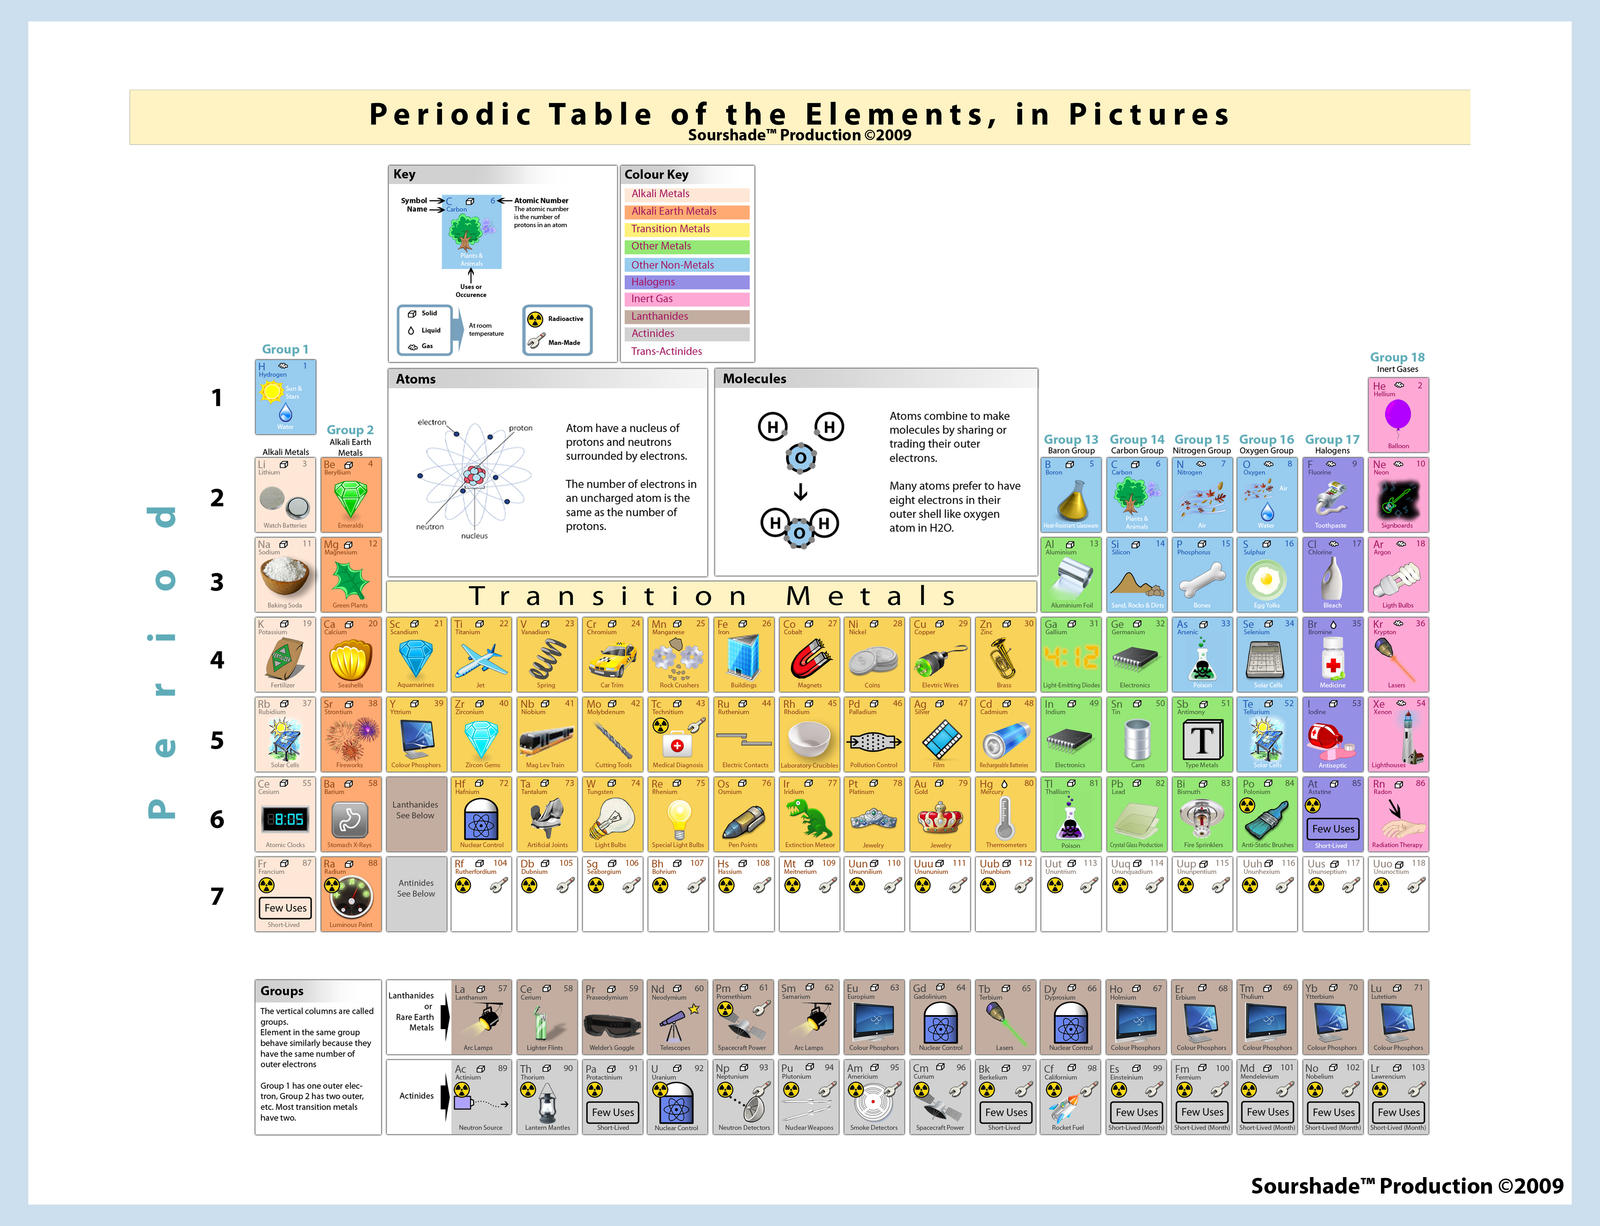 Periodic table of the elements by sourshade on deviantart periodic table of the elements by sourshade gamestrikefo Choice Image